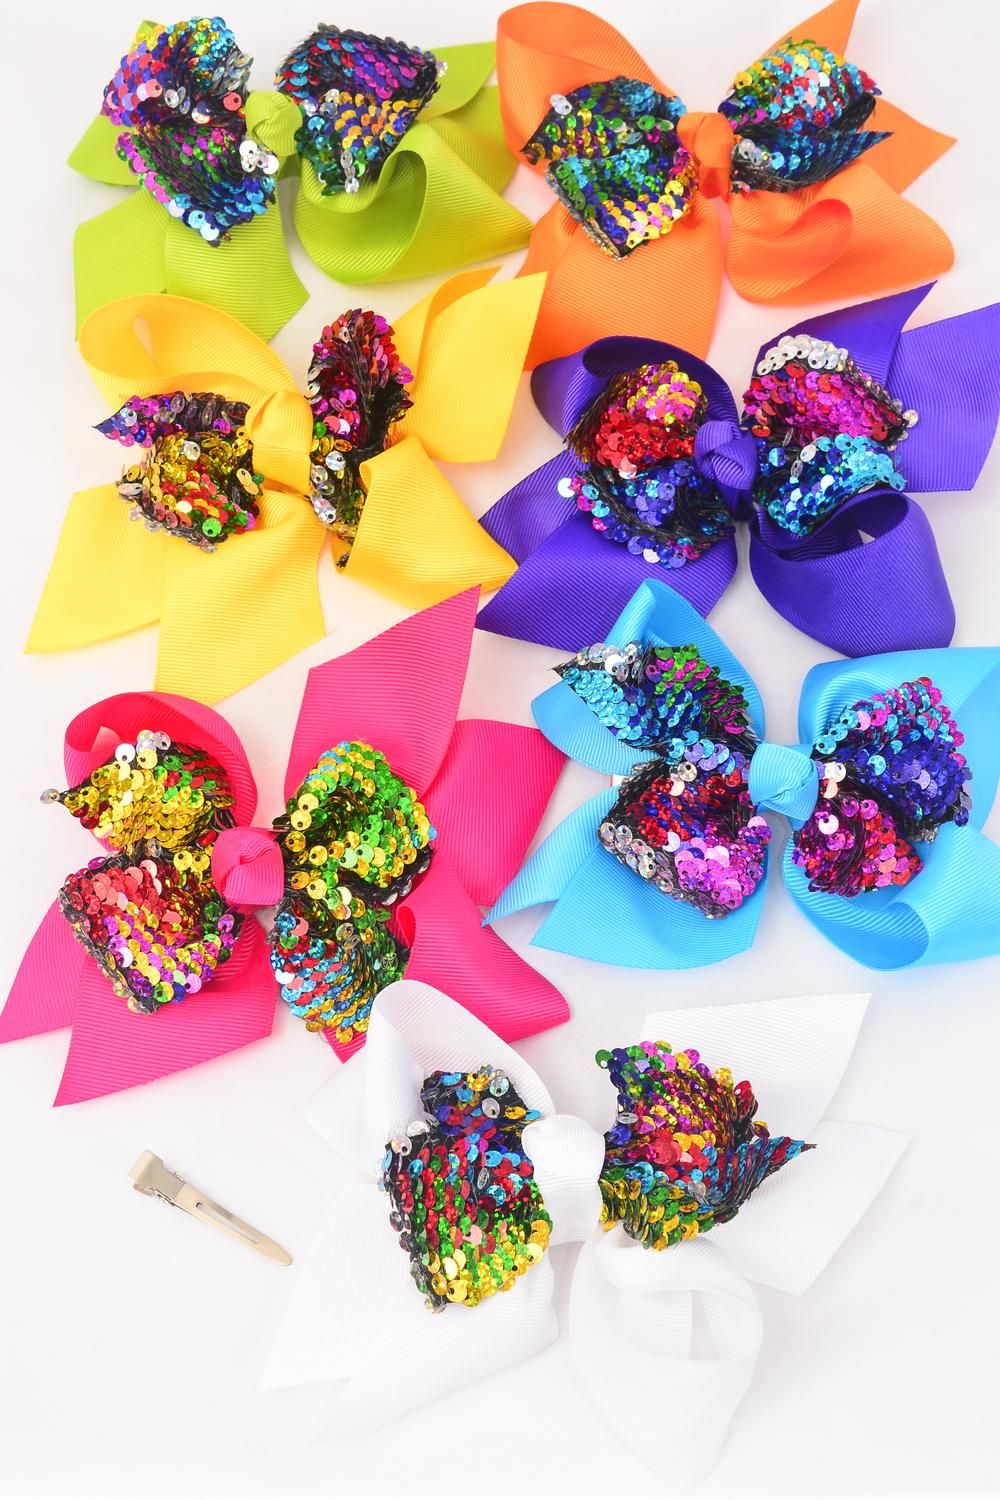 "Hair Bow Jumbo Mermaid Sequin Fabric 2 Tone Reversible Dragon Shiny Scale Sequin Grosgrain Bow-tie Multi/D **Multi** Alligator Clip,Size-6"" x 6"" Wide,2 White,2 Fuchsia,2 Purple,2 Blue,2 Yellow,1 Orange,1 Lime, 7 Color Mix,Clip Strip & UPC Code"